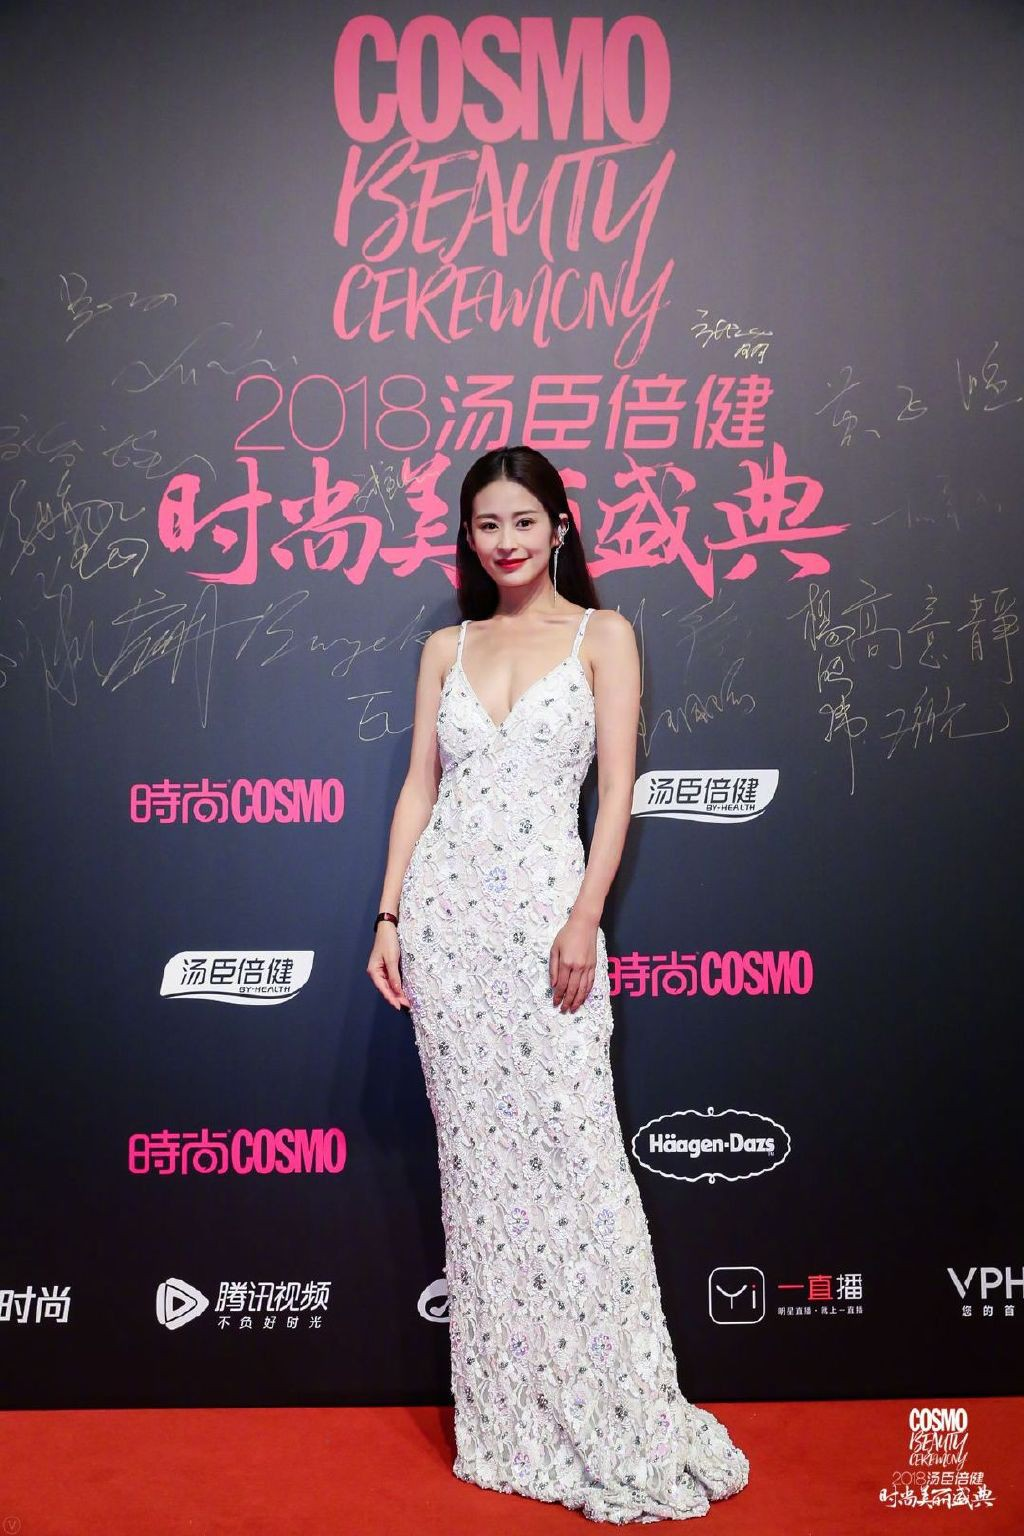 The warmest red carpet Cbiz: Jaejoong causes fever due to the sudden appearance, secretary Kim hot hot pinky side - figure 12.